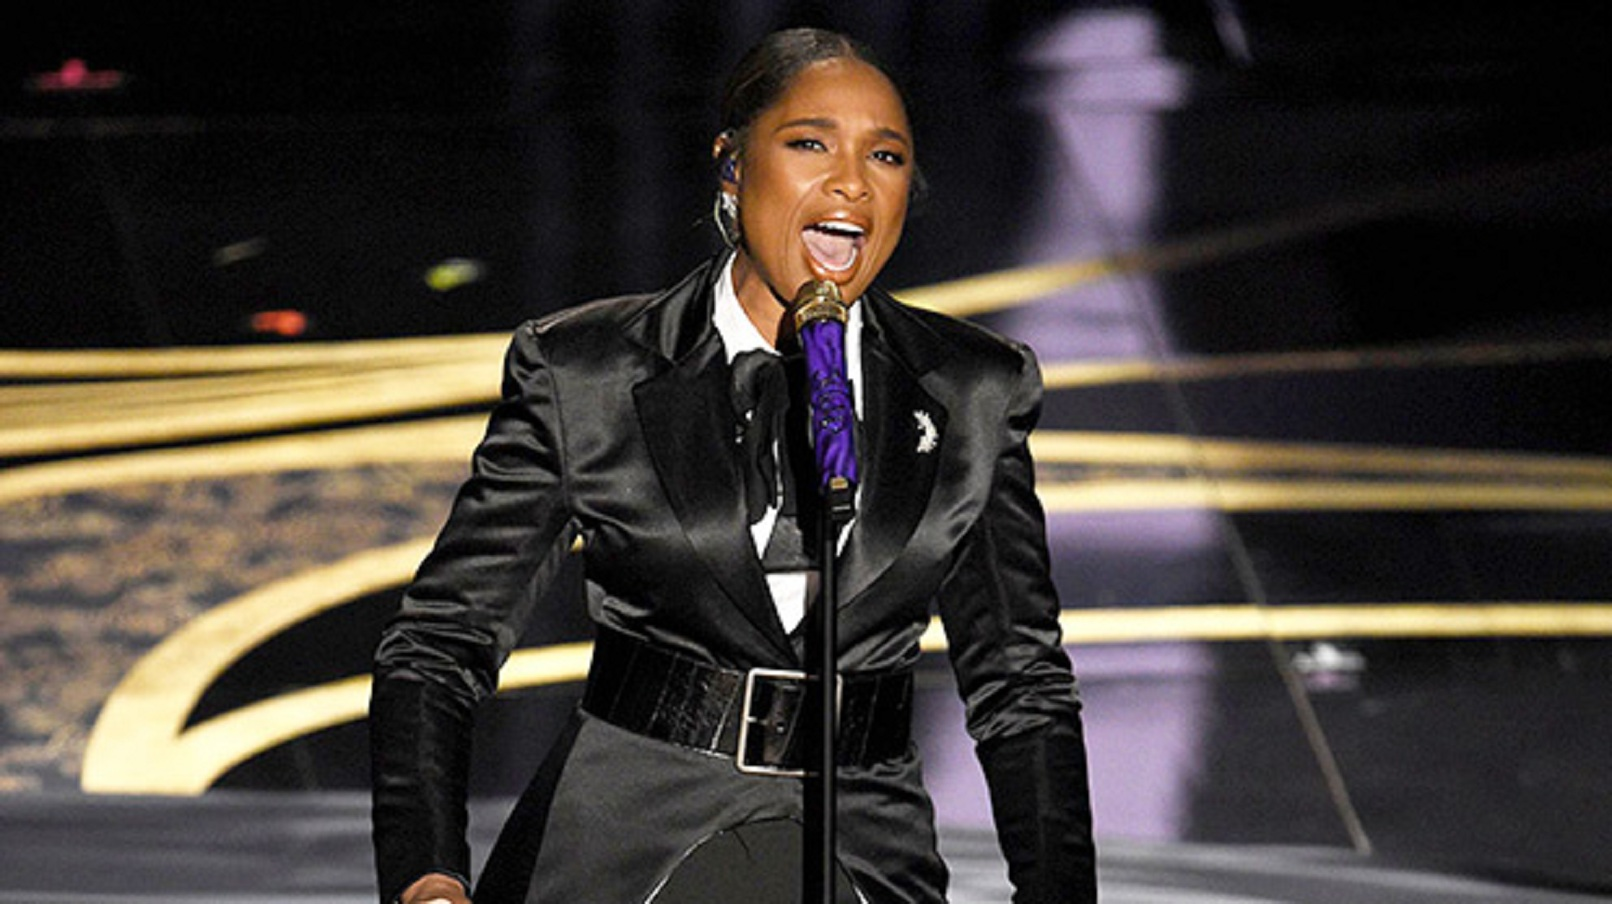 Watch: Jennifer Hudson Belts Out 'I'll Fight' at the 2019 Oscars